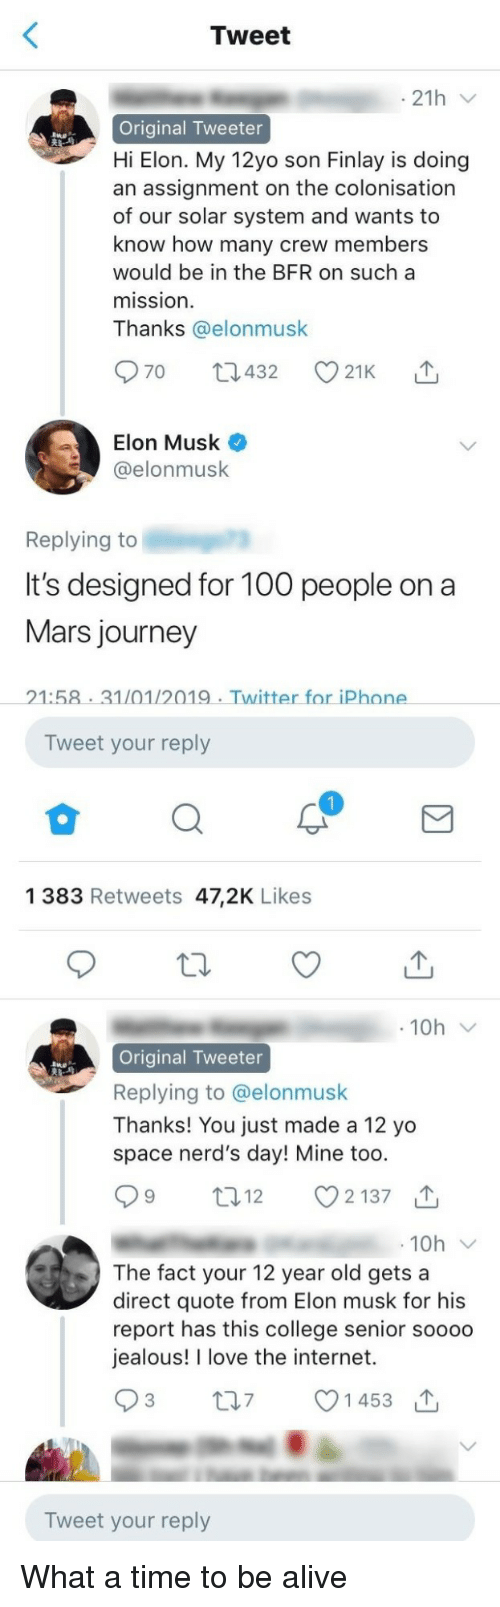 Alive, College, and Internet: Tweet  21h  Original Tweeter  Hi Elon. My 12yo son Finlay is doing  an assignment on the colonisation  of our solar system and wants to  know how many crew members  would be in the BFR on sucha  mission  Thanks @elonmusk  Elon Musk  @elonmusk  Replying to  It's designed for 10o people ona  Mars journey  21:58 31/01/2019 Twitter for iPhone  Tweet your reply  1 383 Retweets 47,2K Likes  Original Tweeter  Replying to @elonmusk  Thanks! You just made a 12 yo  space nerd's day! Mine too  12  2137  10h  The fact your 12 year old gets a  direct quote from Elon musk for his  report has this college senior soooo  jealous! I love the internet.  t07 1453  Tweet your reply What a time to be alive